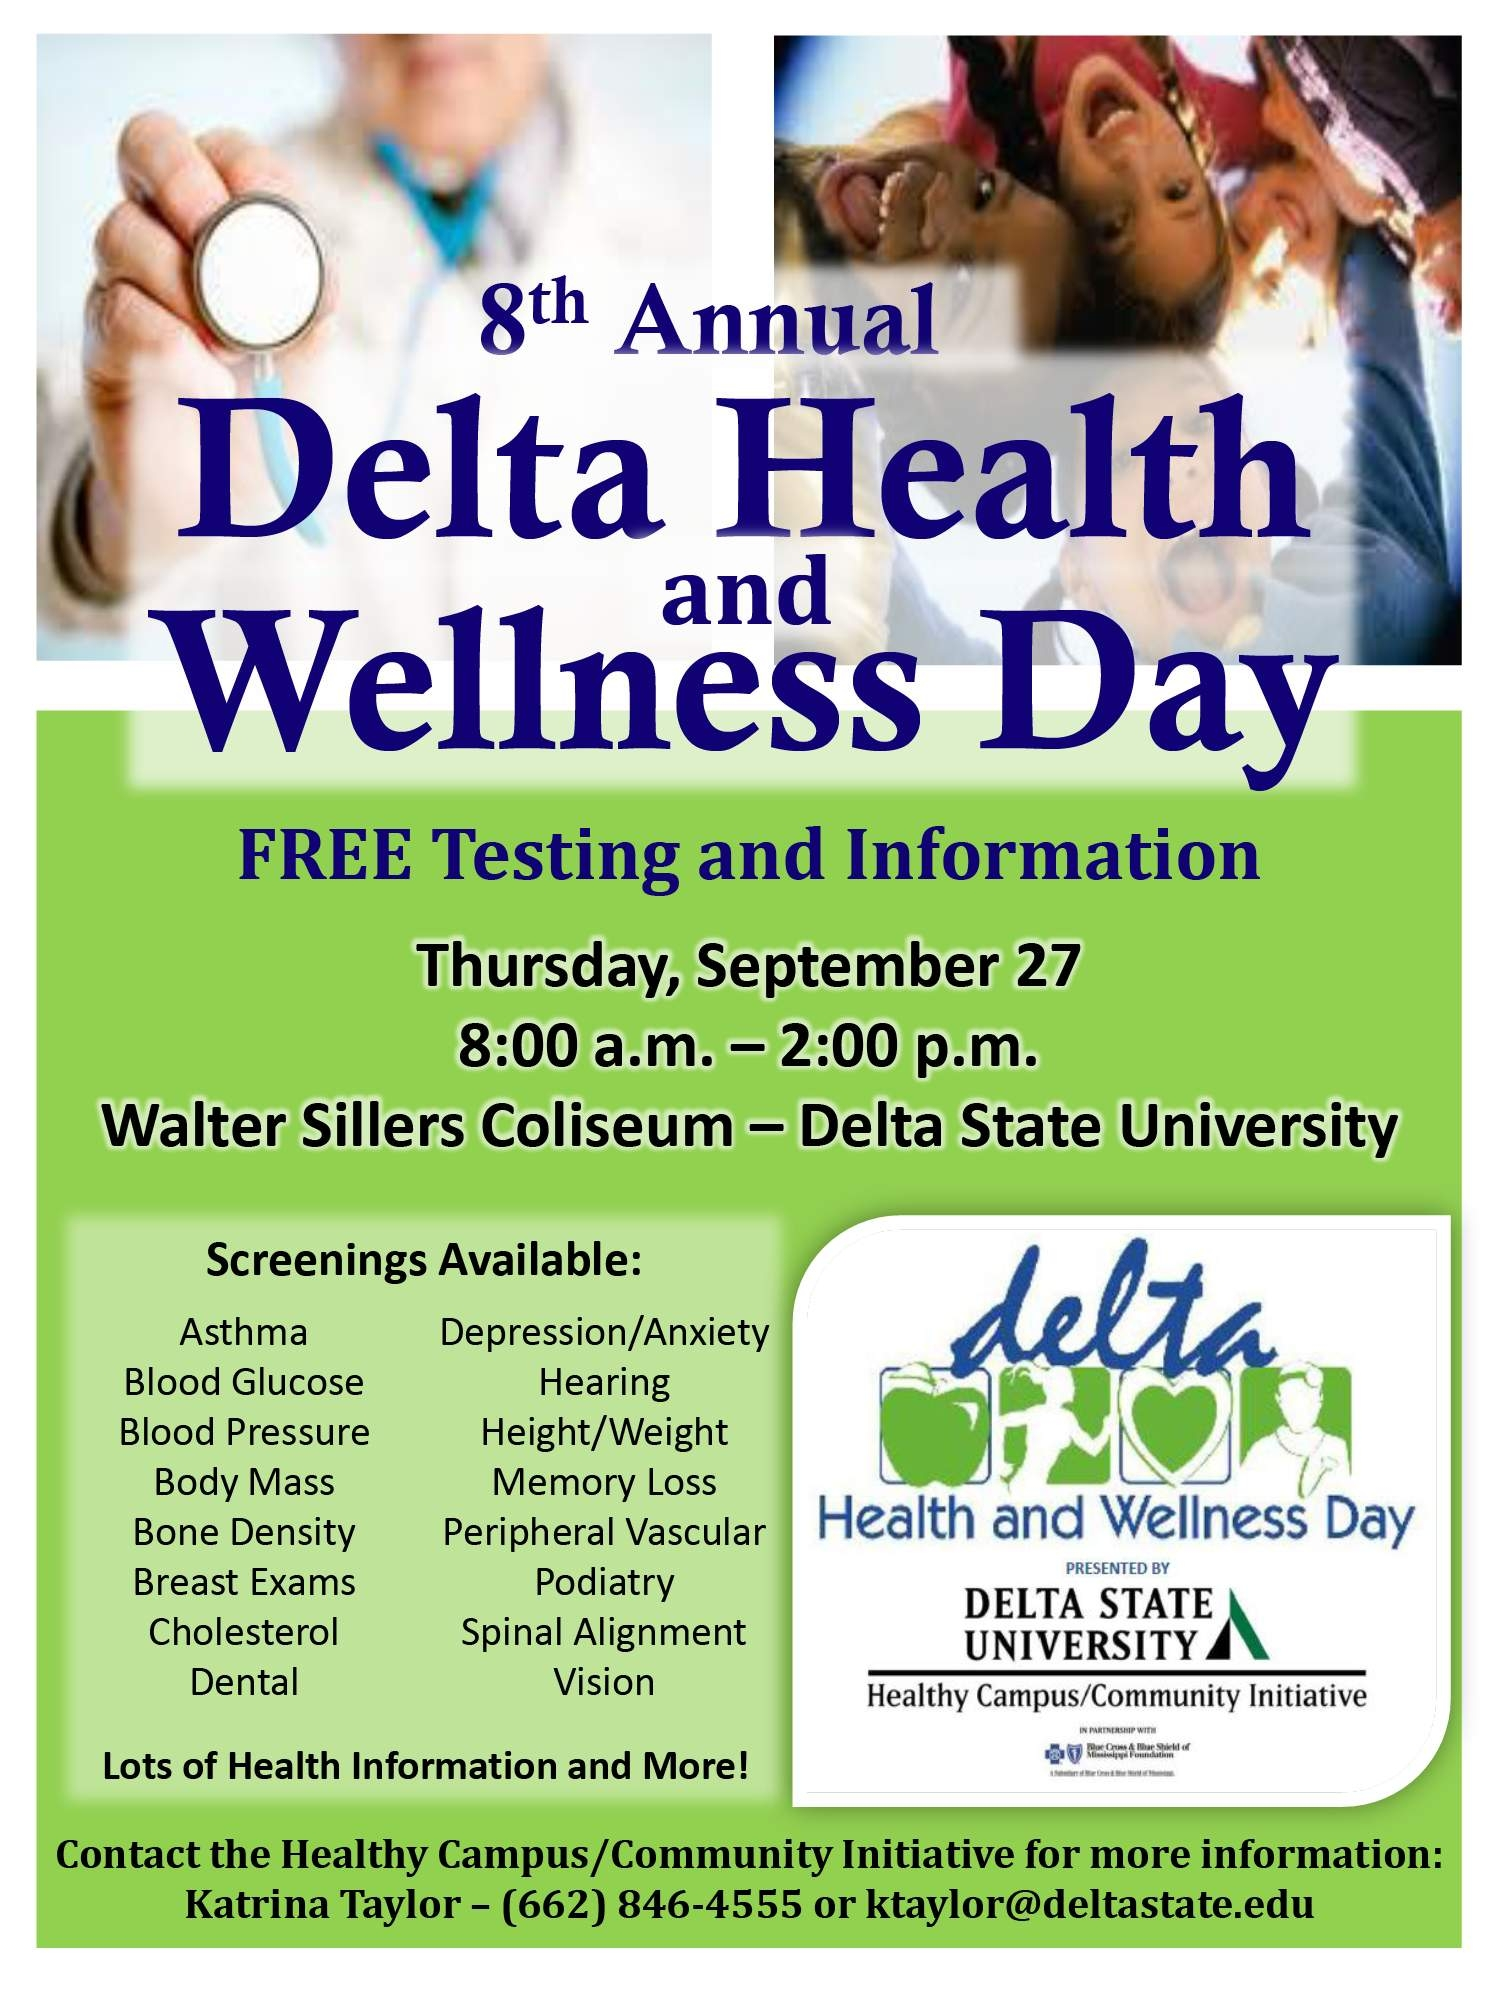 8th Annual Delta Health And Wellness Day